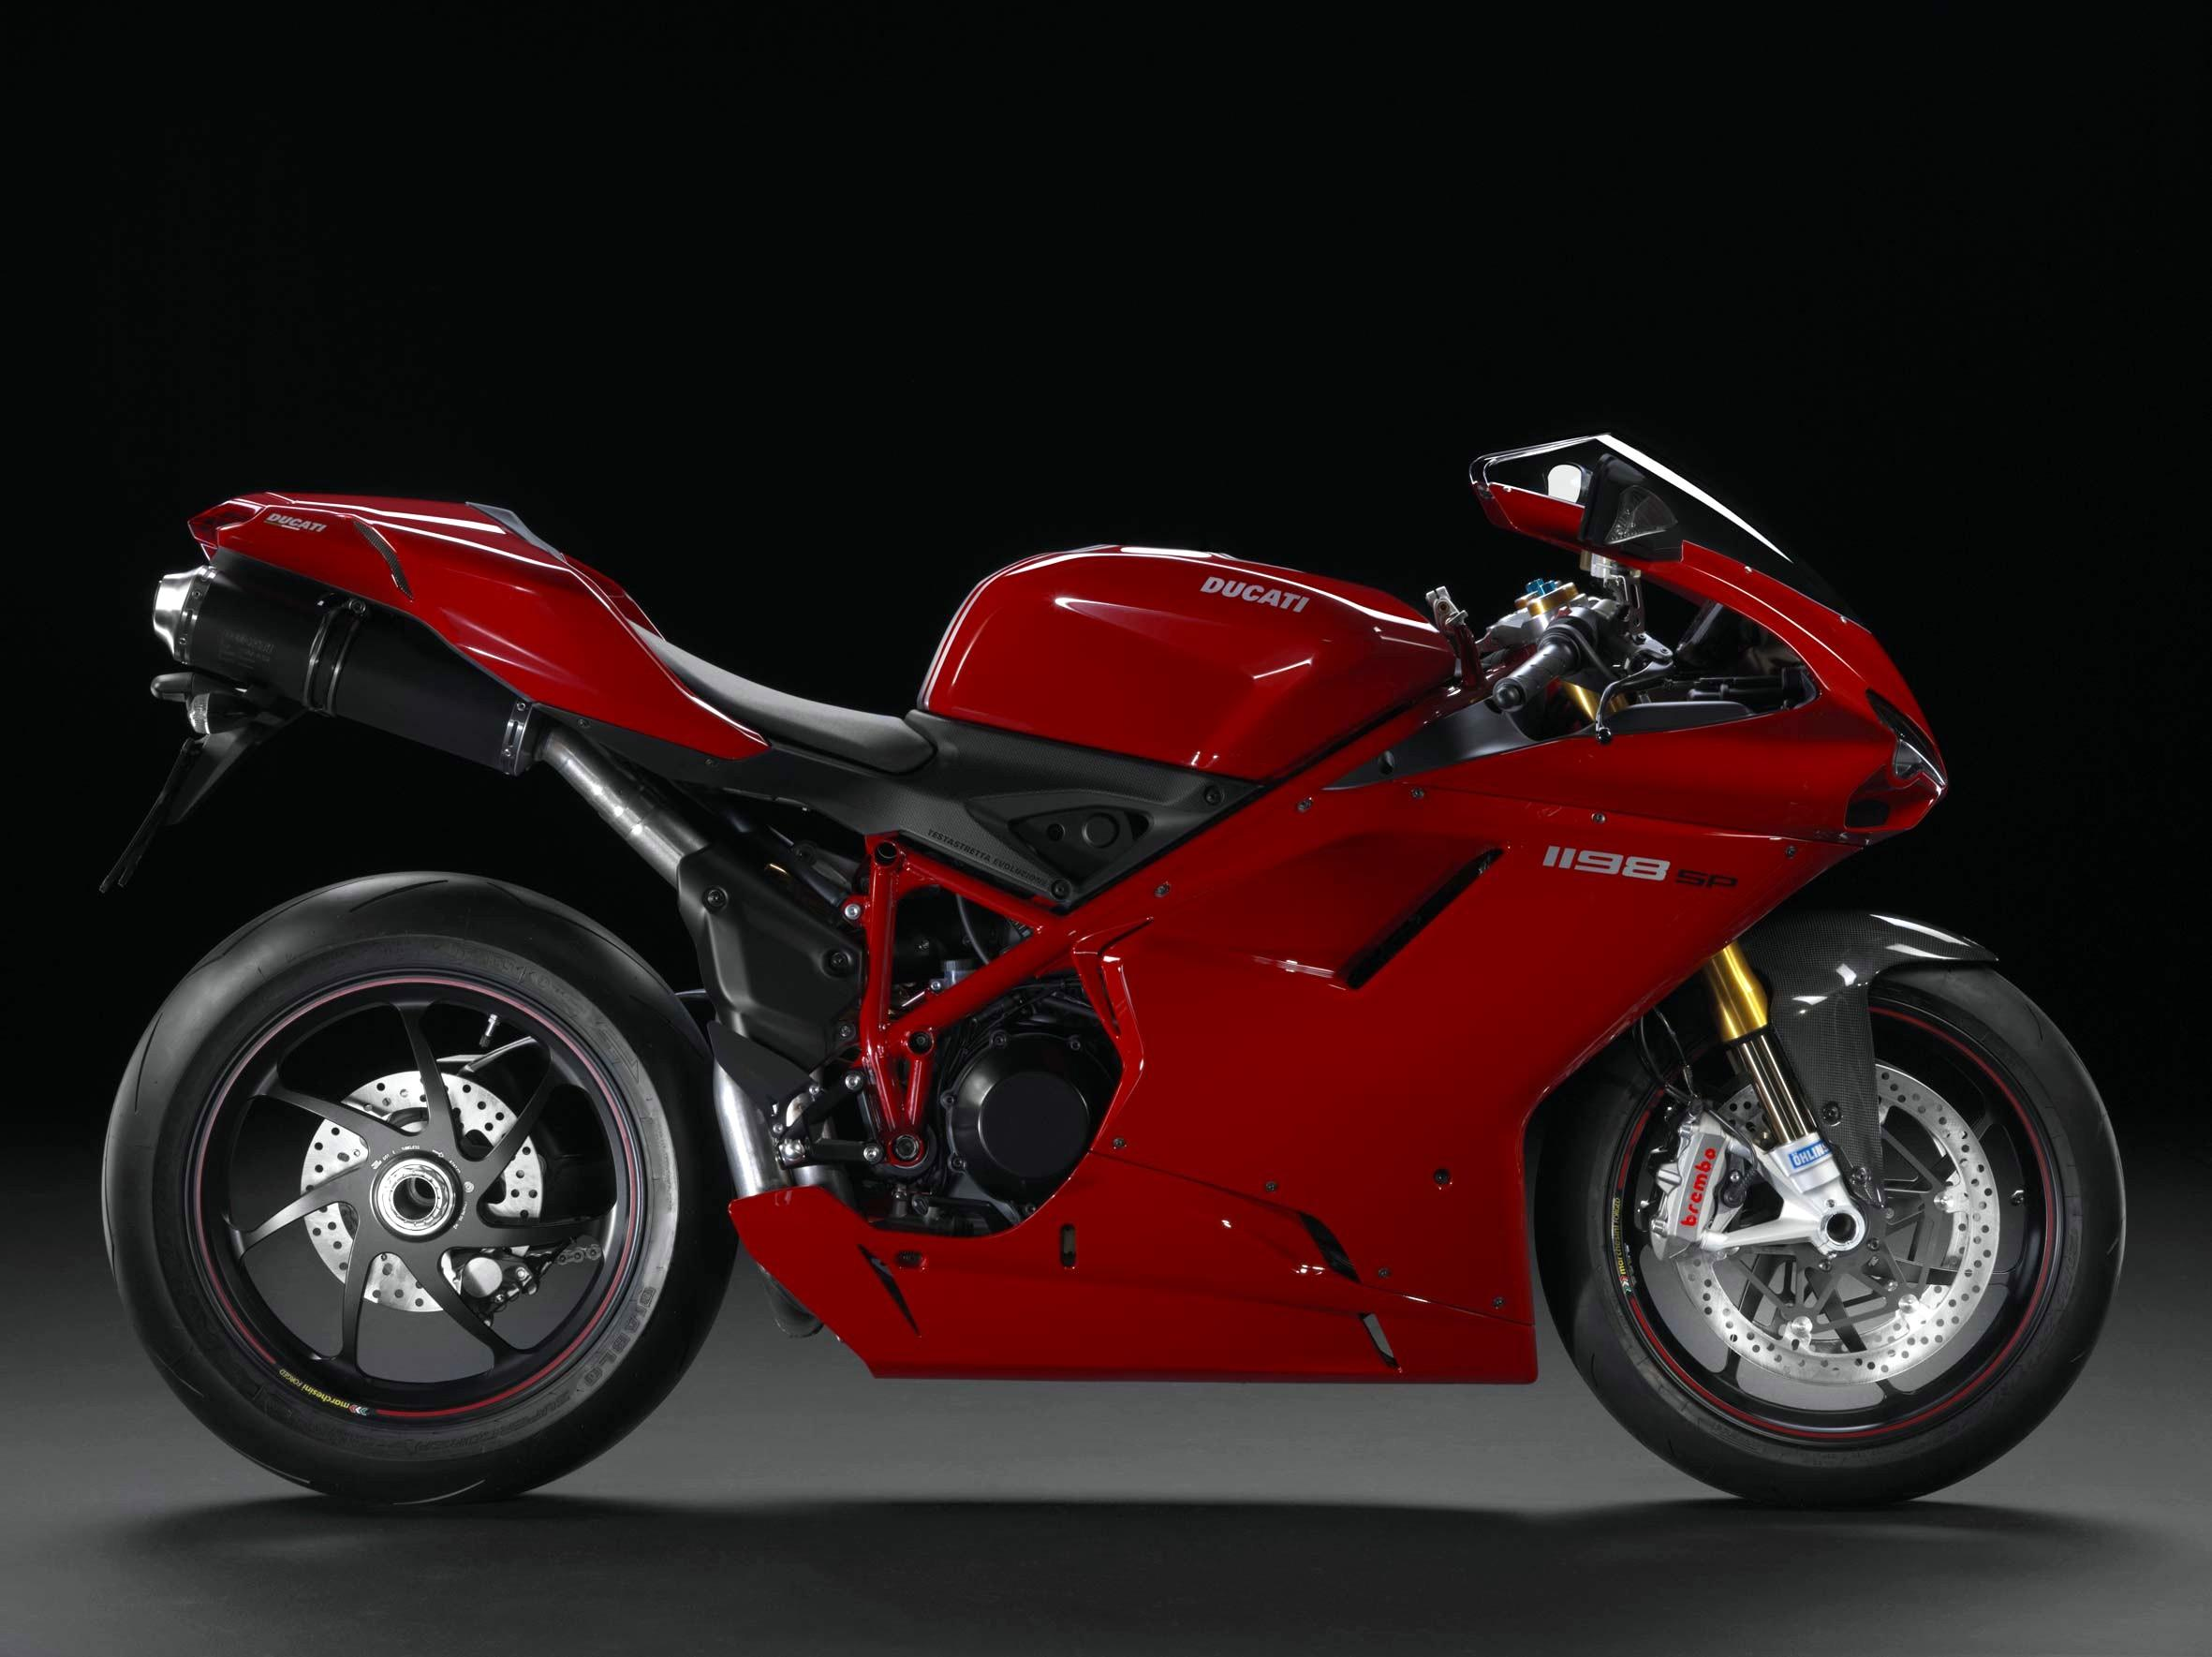 Superbike Hd Wallpaper Full Screen: Ducati Superbike Wallpaper HD Download